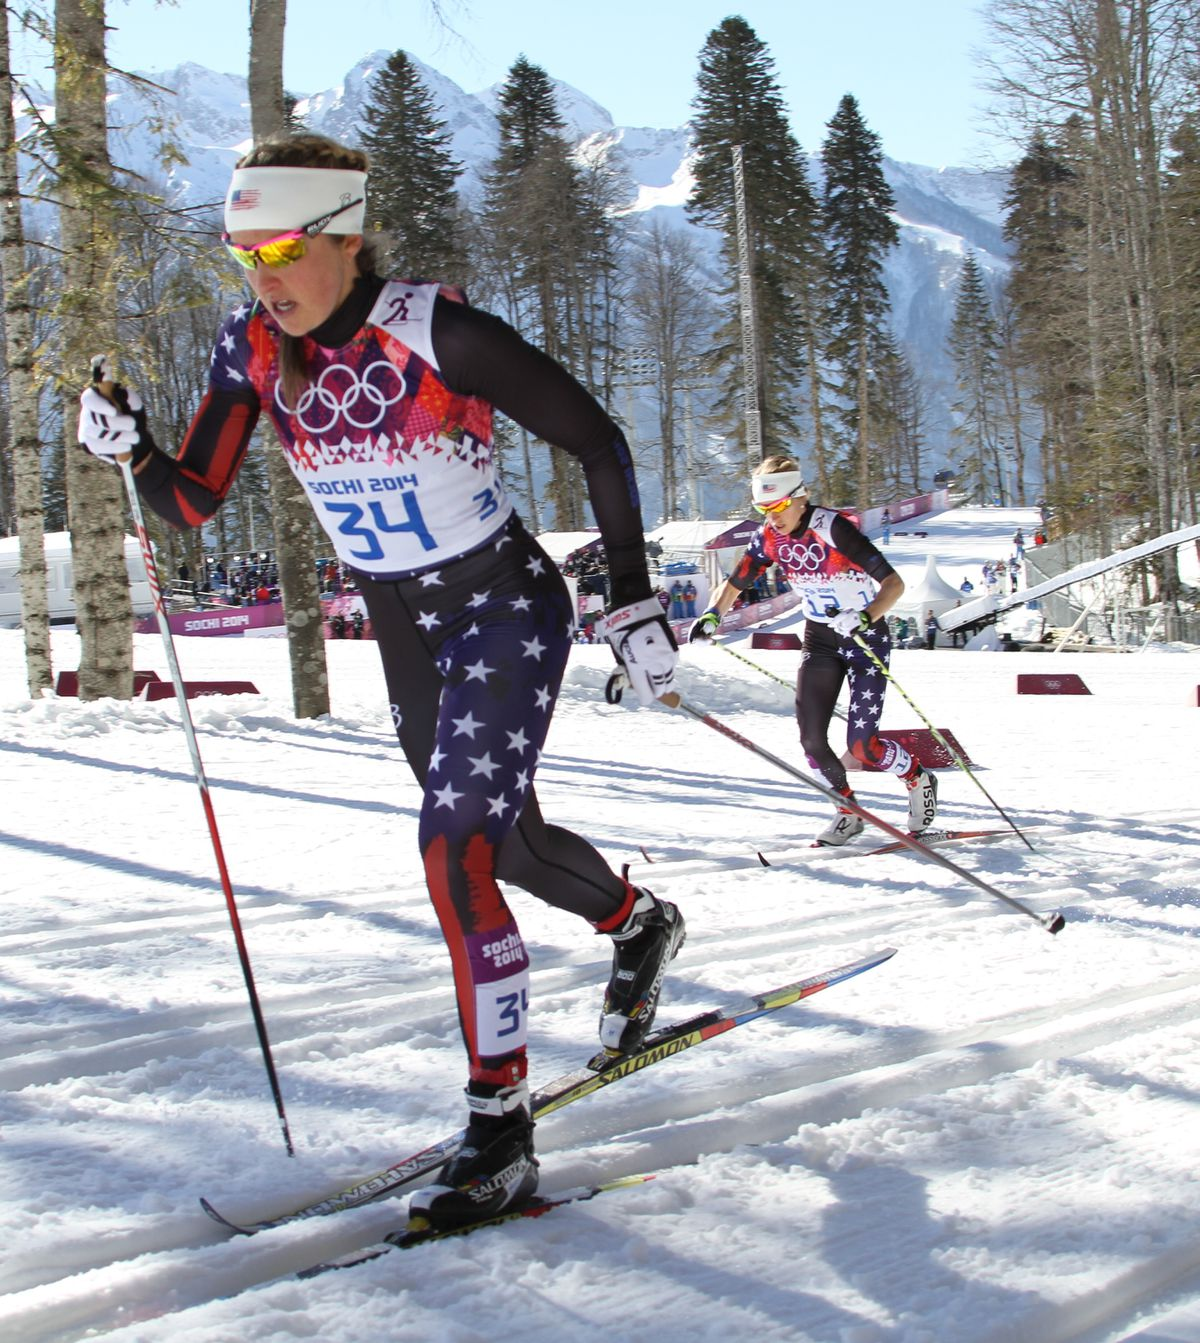 Holly Brooks leads teammate Liz Stephen in the 15-kilometer skiathlon at the 2014 Winter Olympics in Sochi, Russia. (Nathaniel Herz / ADN archive 2014)